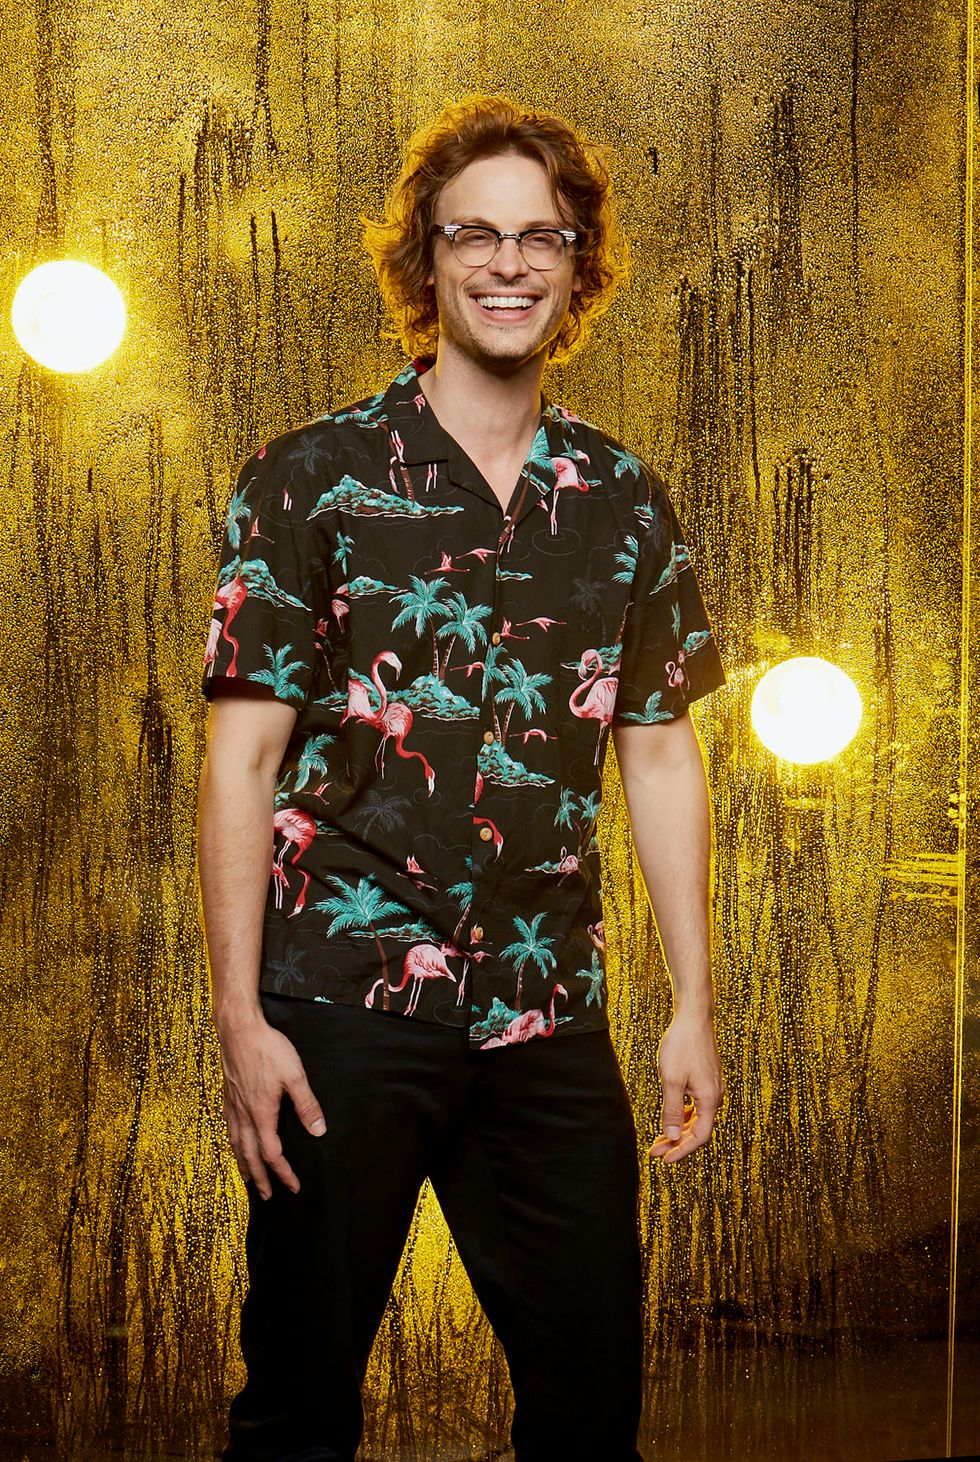 Matthew Gray Gubler of Criminal Minds in tropical shirt with palm trees and flamingos